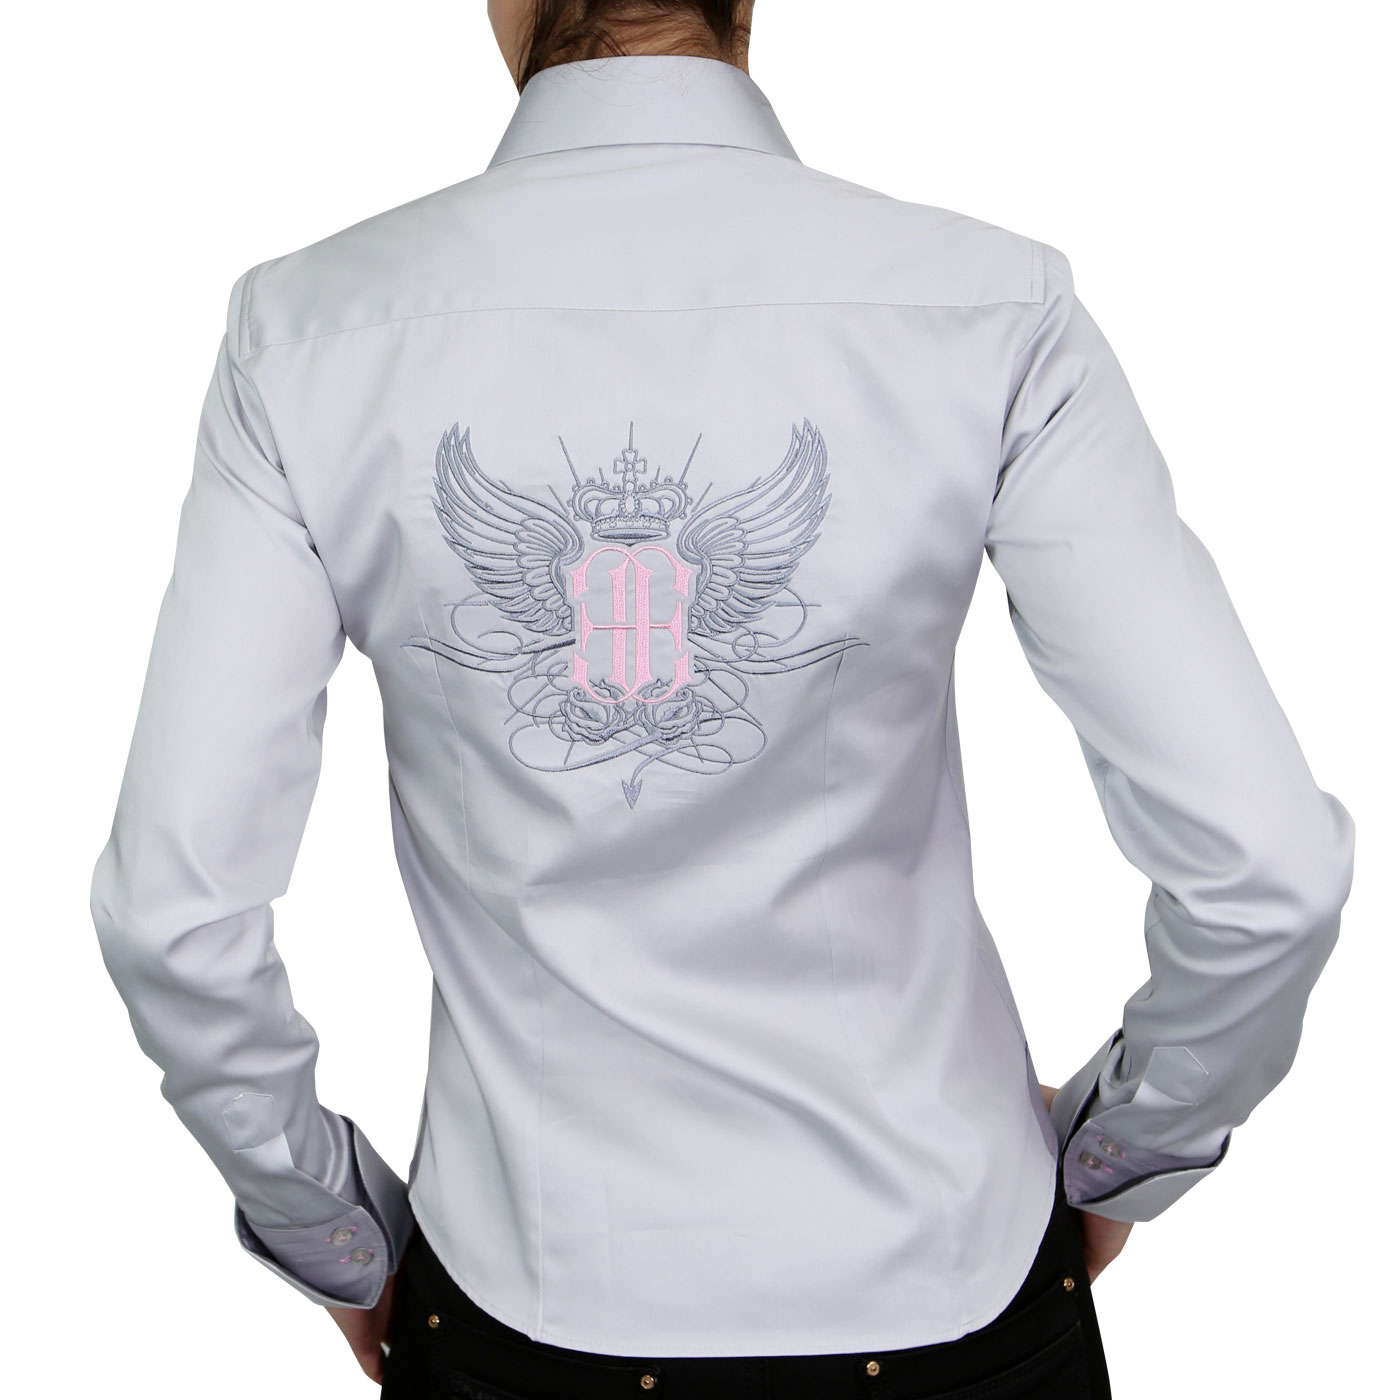 Woman shirt embroidered